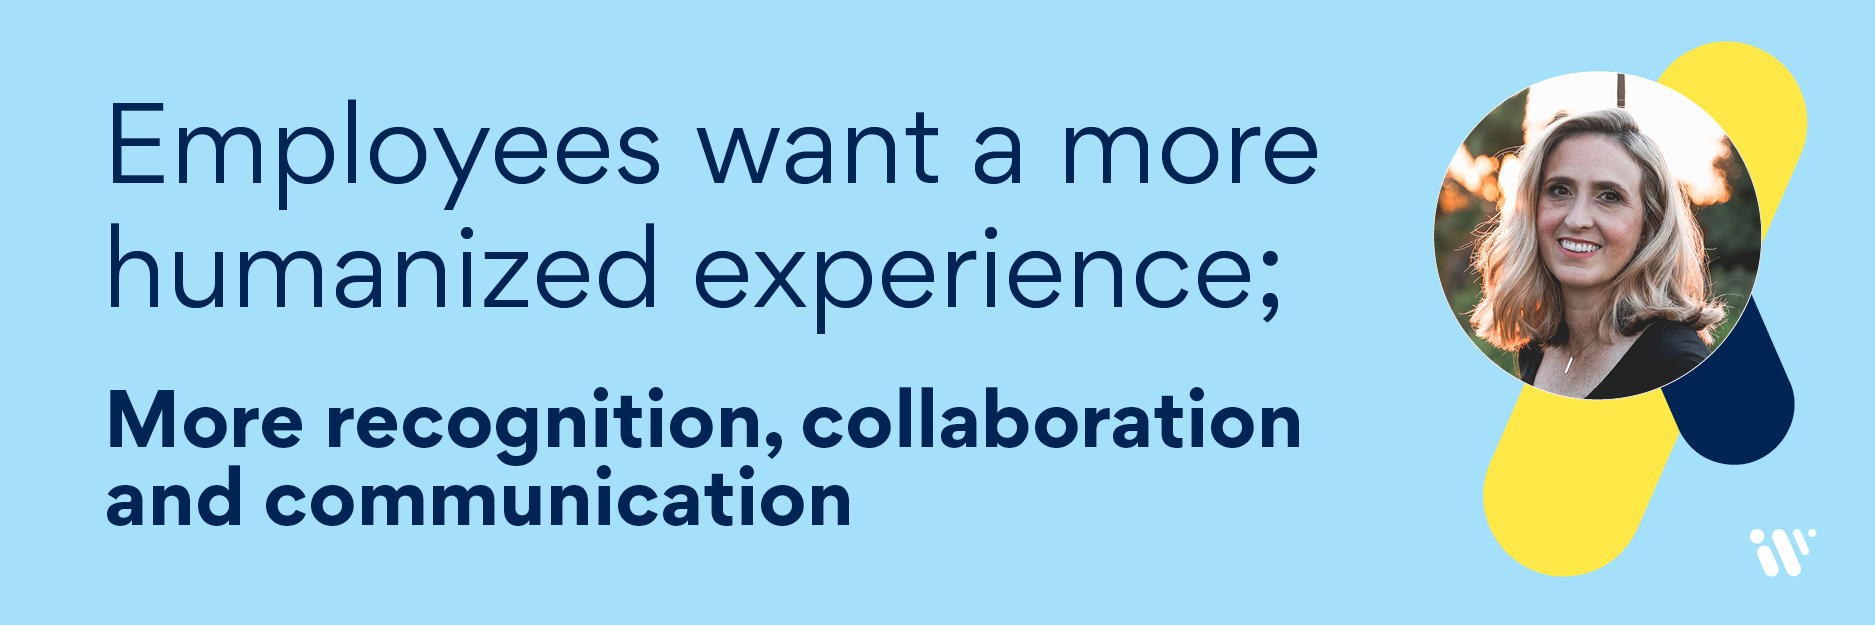 Employee recognition, collaboration, and communication